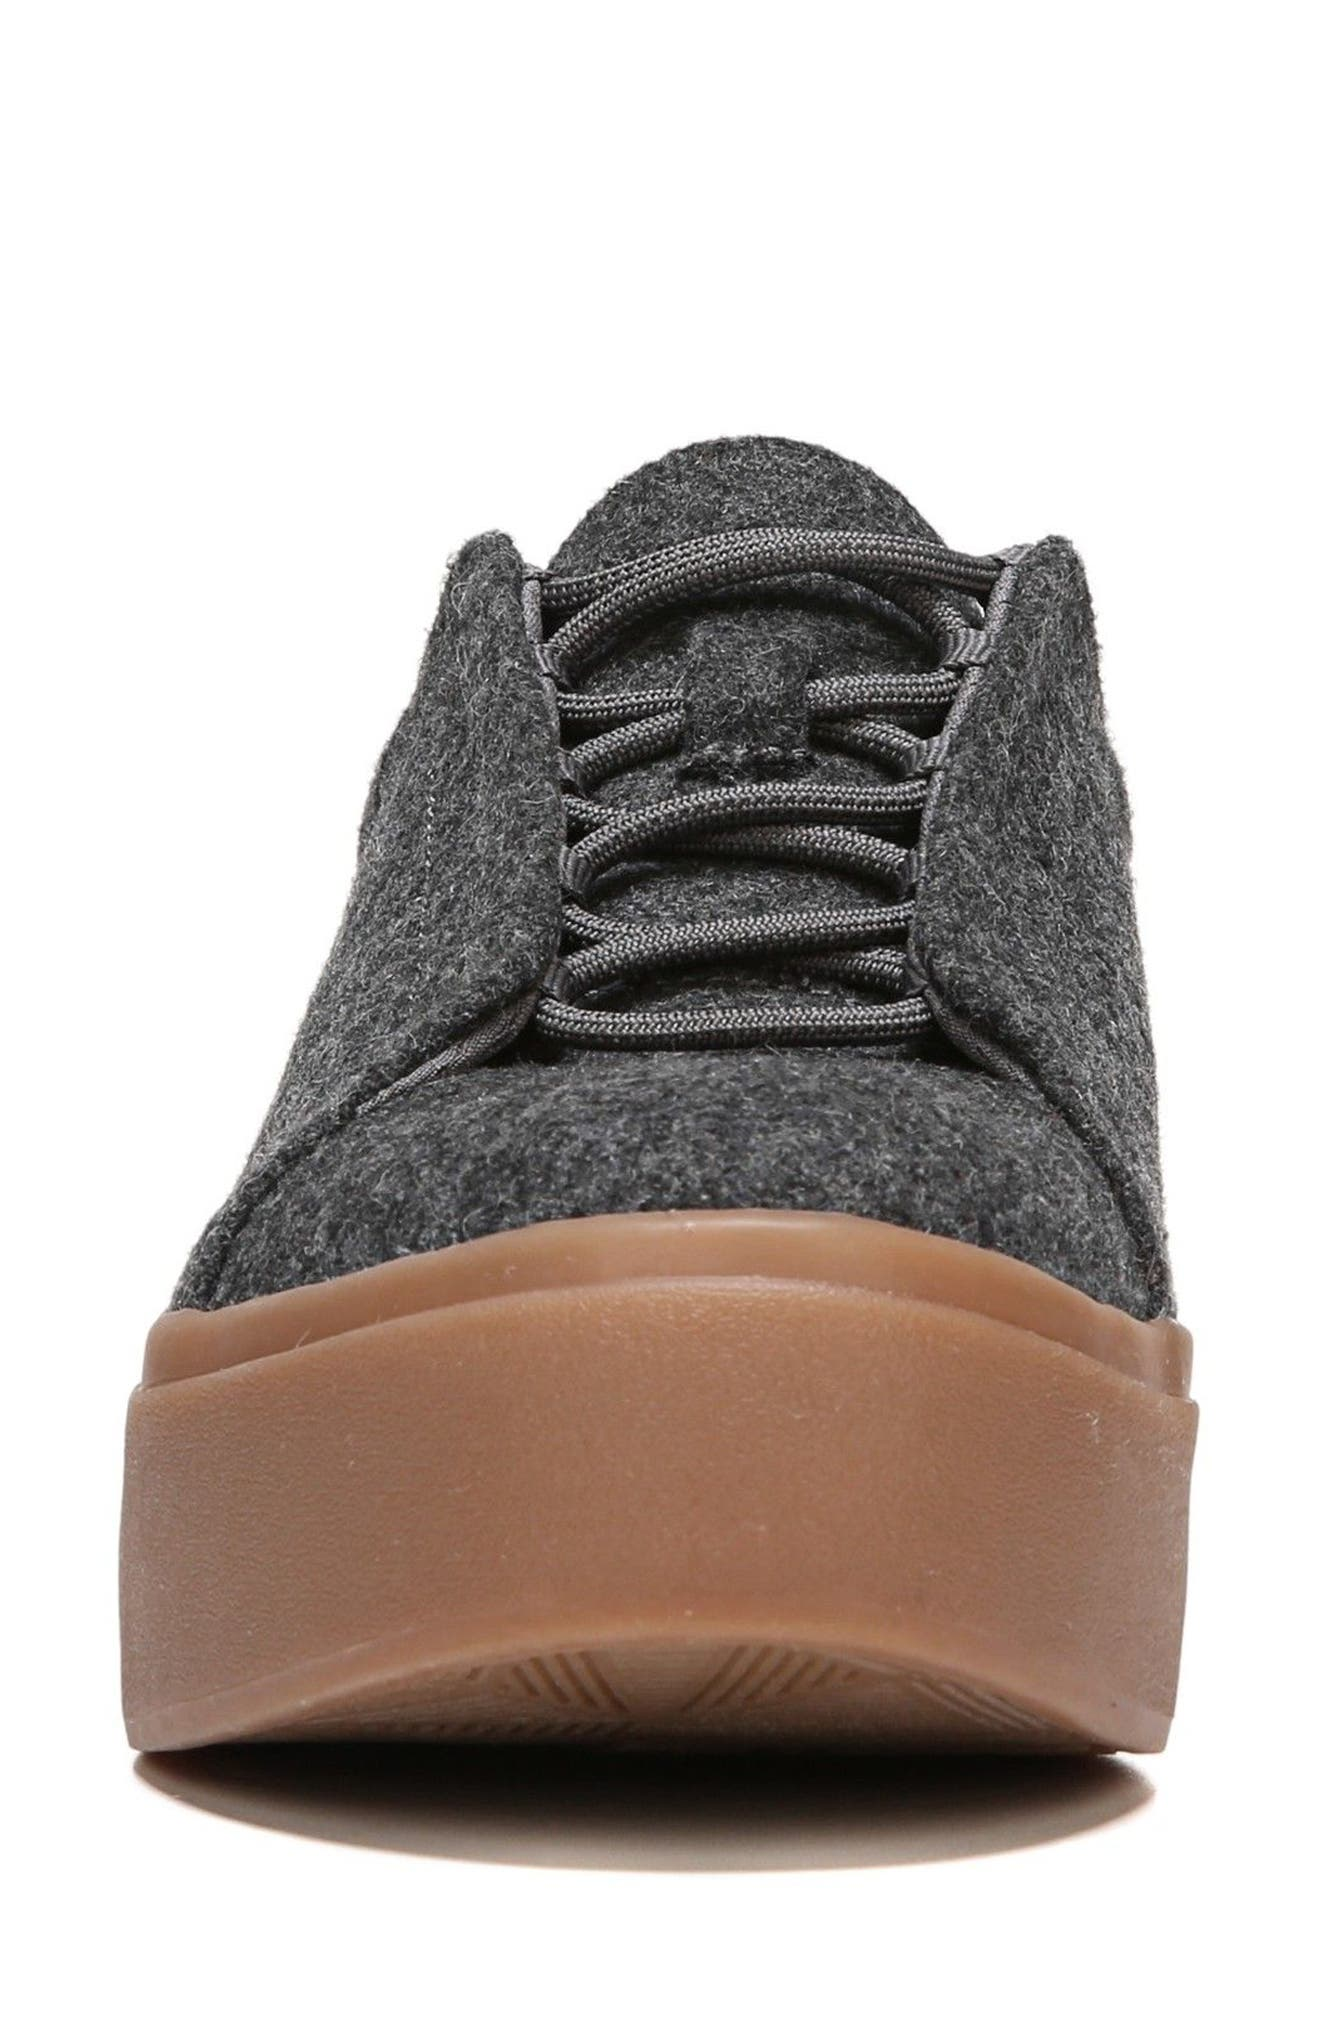 Abbot Sneaker,                             Alternate thumbnail 4, color,                             Charcoal Fabric